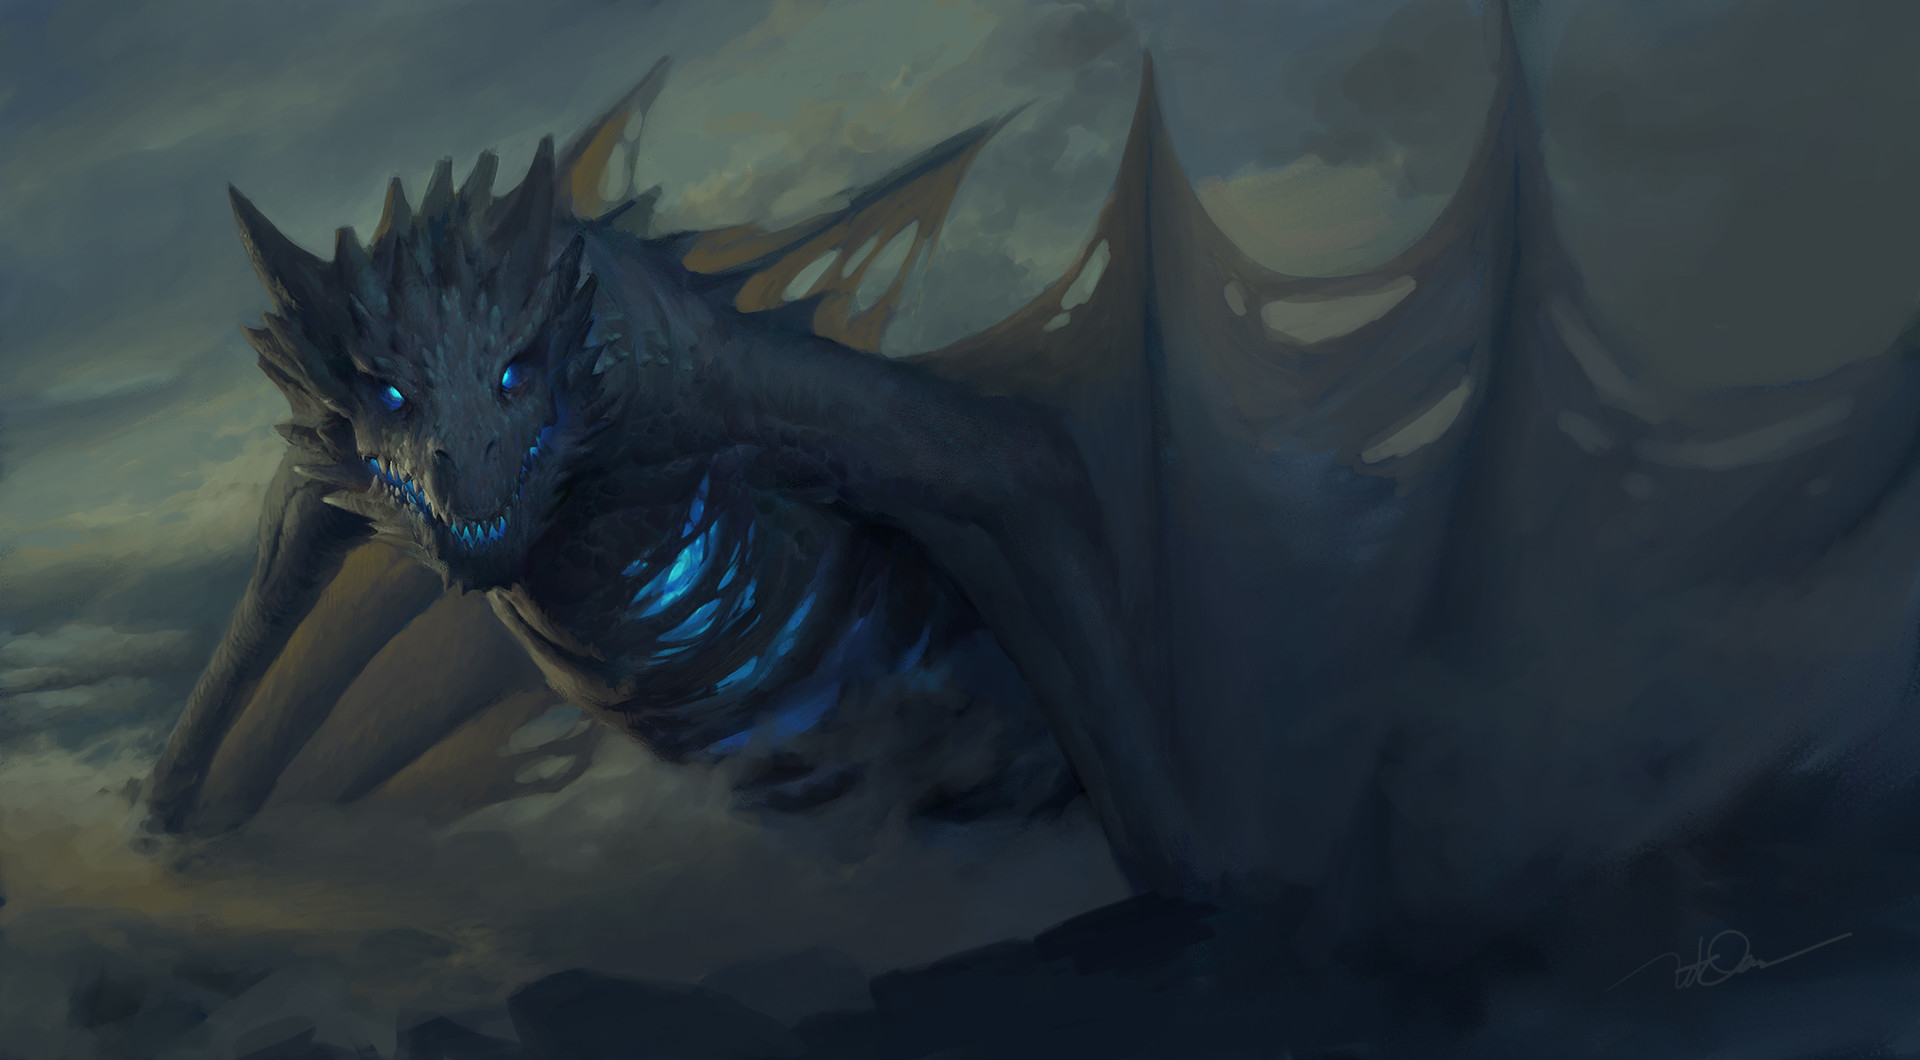 Ice Dragon Game Of Thrones 7 Wallpaper HD Movies 4K Wallpapers 1920x1060